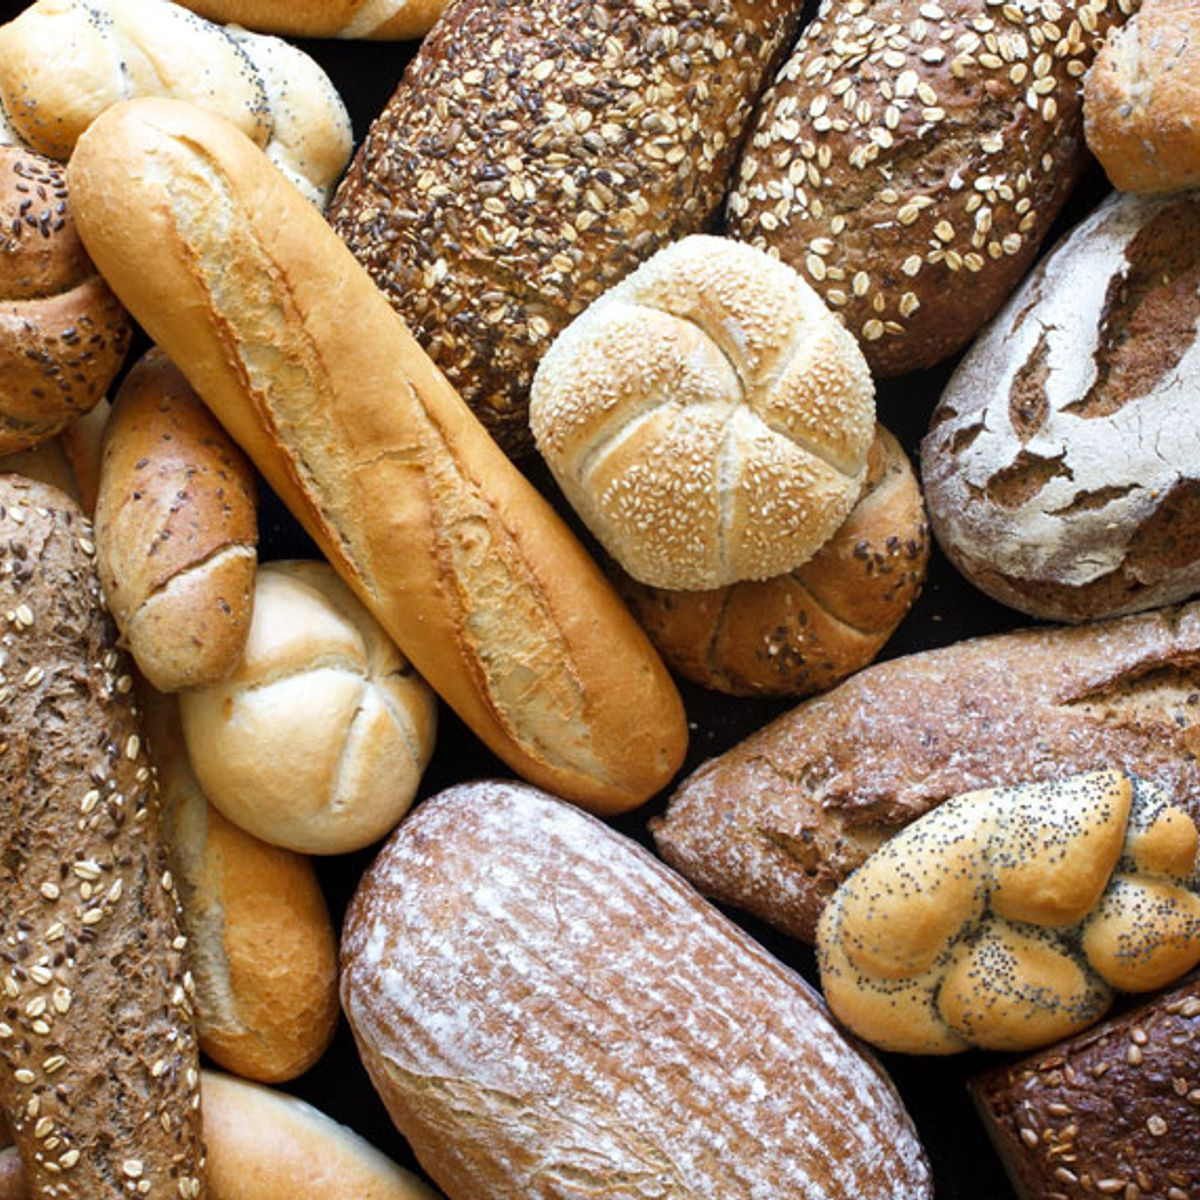 Gluten-sensitive liberals? Investigating the stereotype suggests food fads unite us all